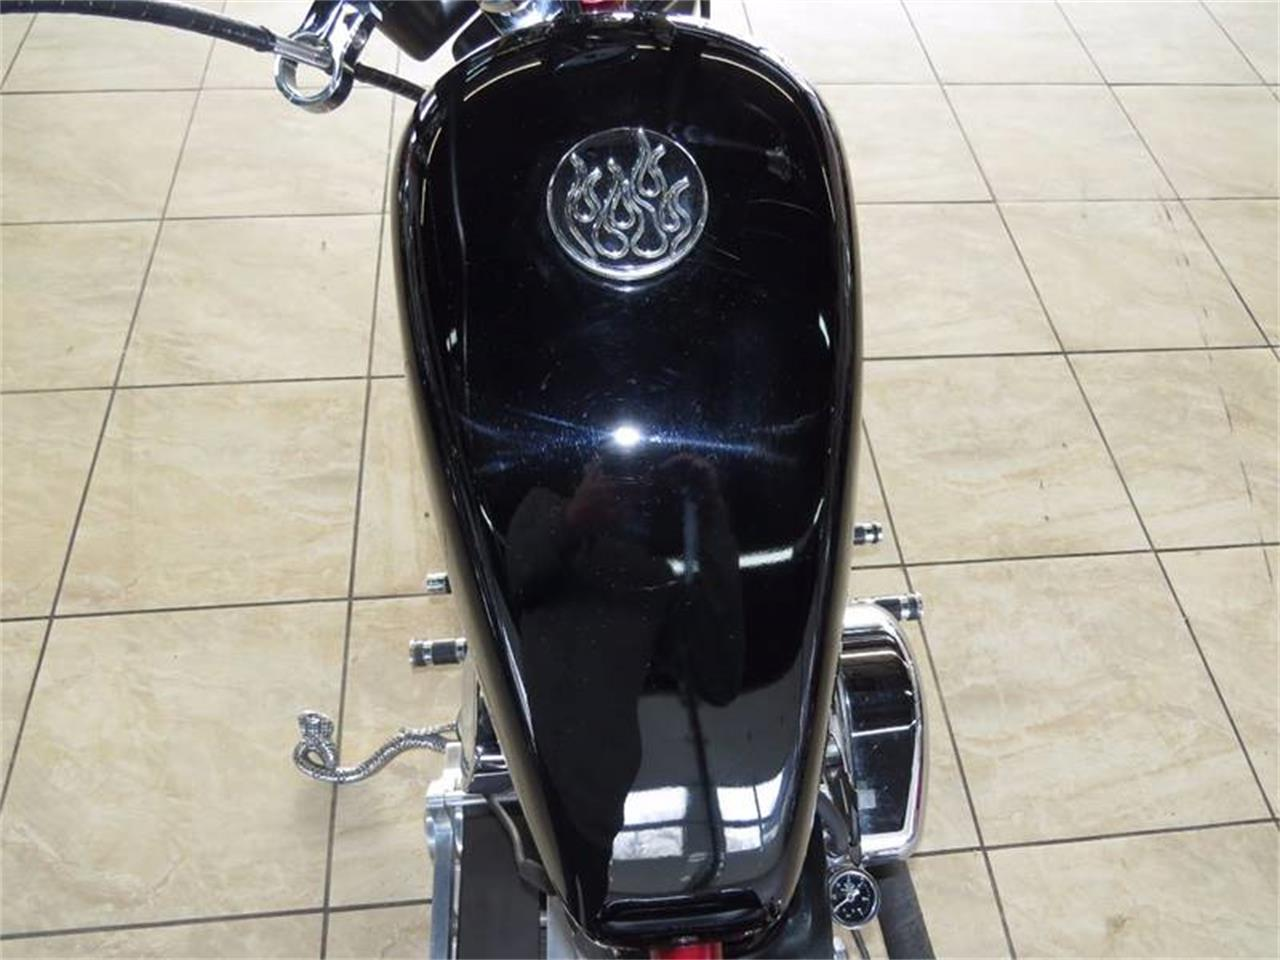 2012 Harley-Davidson Motorcycle for sale in St. Charles, IL – photo 20